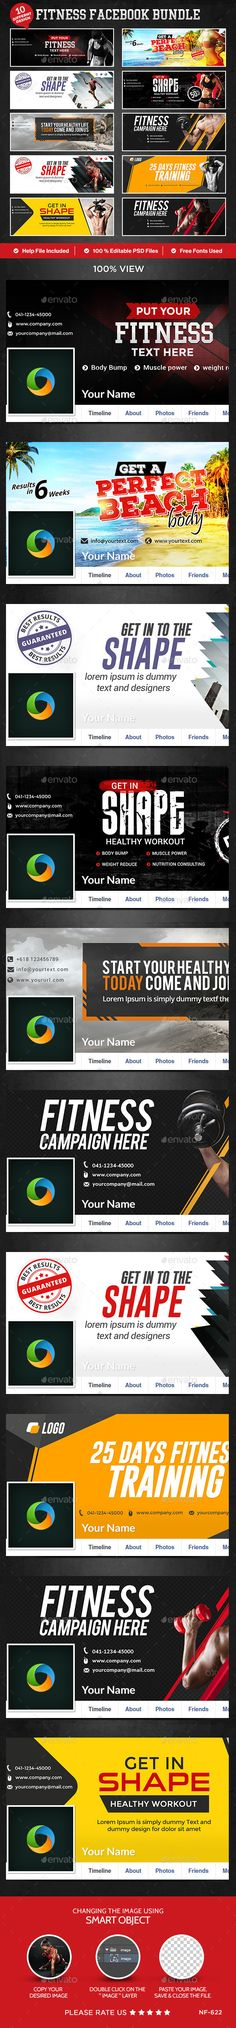 Fitness Facebook Covers - 10 Designs Templates #design #social Download: http://graphicriver.net/item/fitness-facebook-covers-10-designs/12801133?ref=ksioks